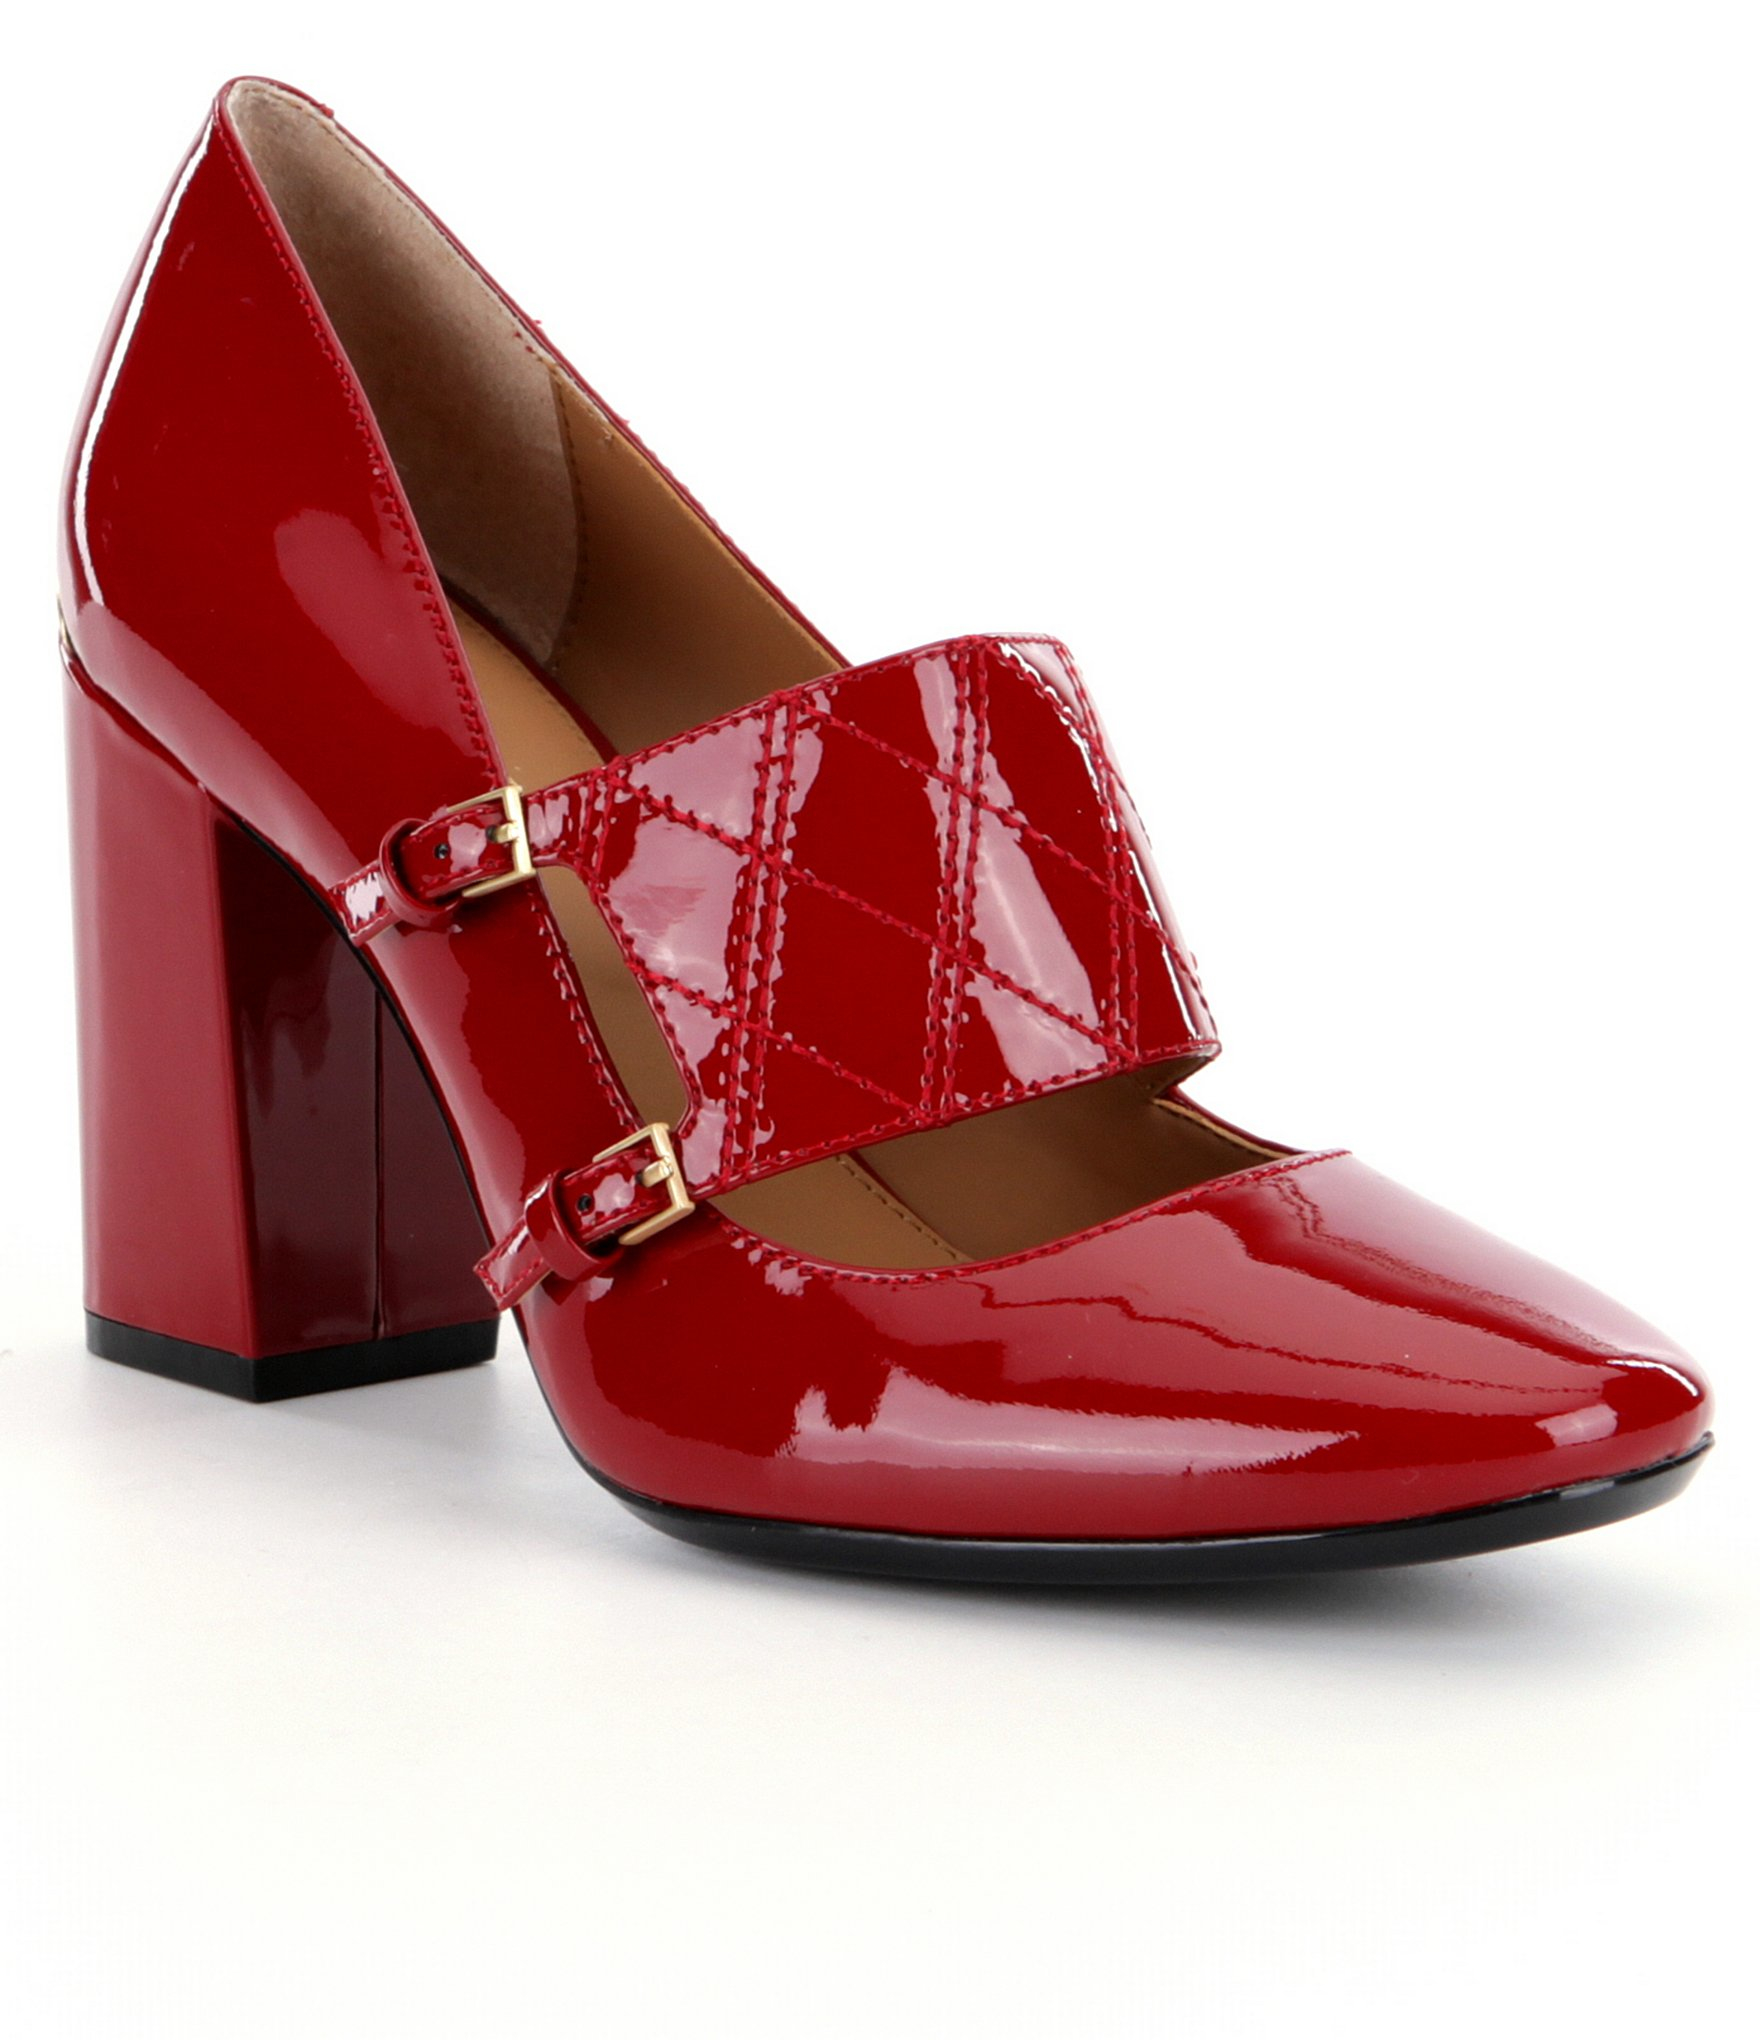 646c4985ad Calvin Klein Casilla Block Heel Pumps in Red - Lyst